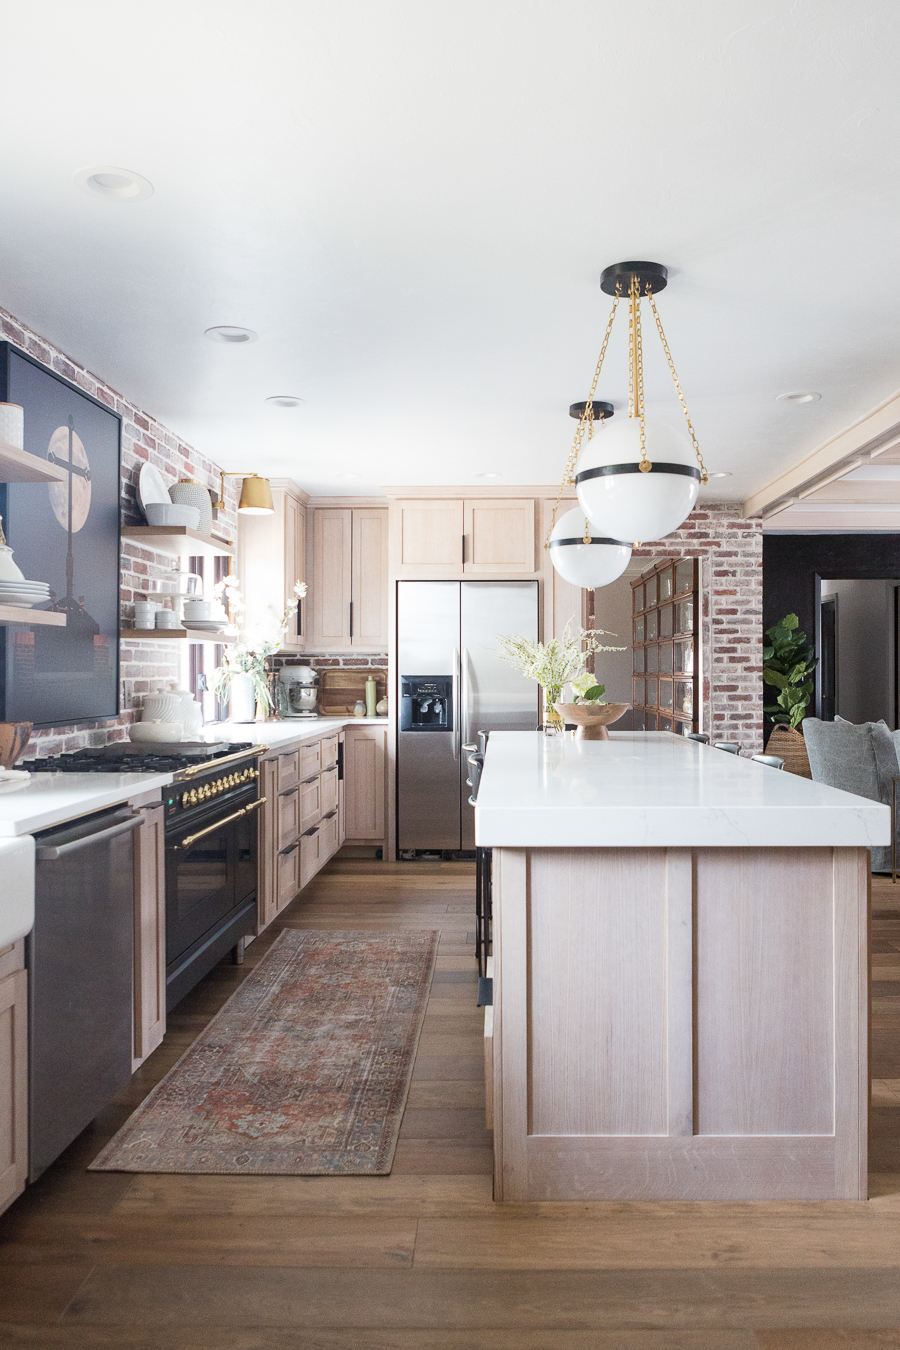 Image of: Cc And Mike Kane Project Remodel Reveal Rift Sawn White Oak Wood Kitchen Cabinets With Marble Countertops Arteriors Pendant Lighting Black Hardware Black Stove With Gold Hardware Terracotta Loren Kitchen Runner